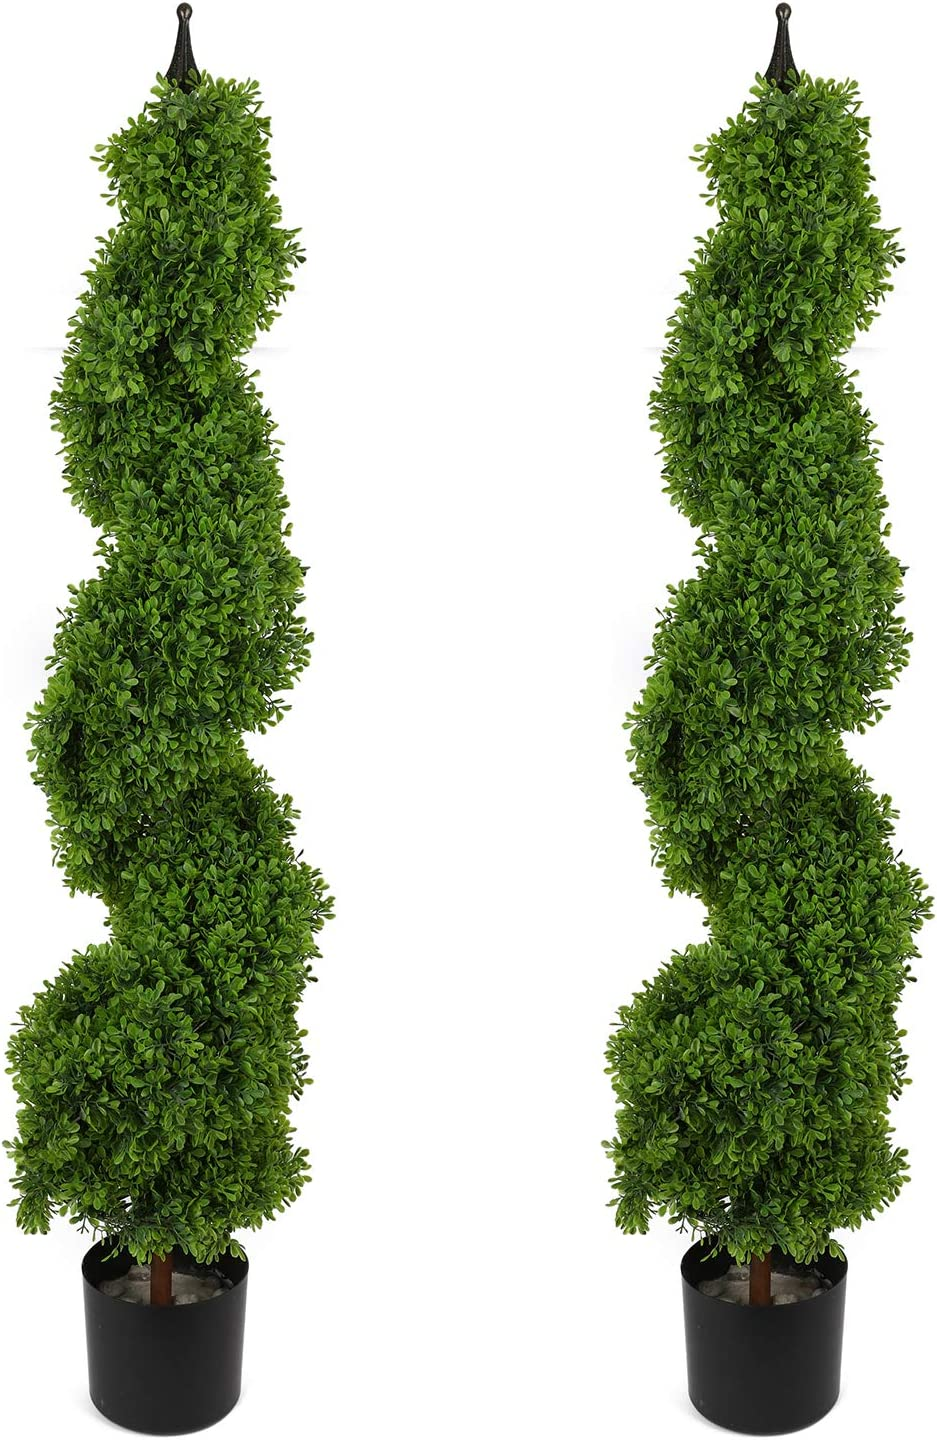 Houseables Artificial Boxwood Topiary, Fake Spiral Trees, 2 Pack, 4', Plastic Plants, Outdoor Porch Décor, Faux Potted Bushes, Indoor Ornamental Tree, with Finial, for Front Door, Tall Entryway Shrubs